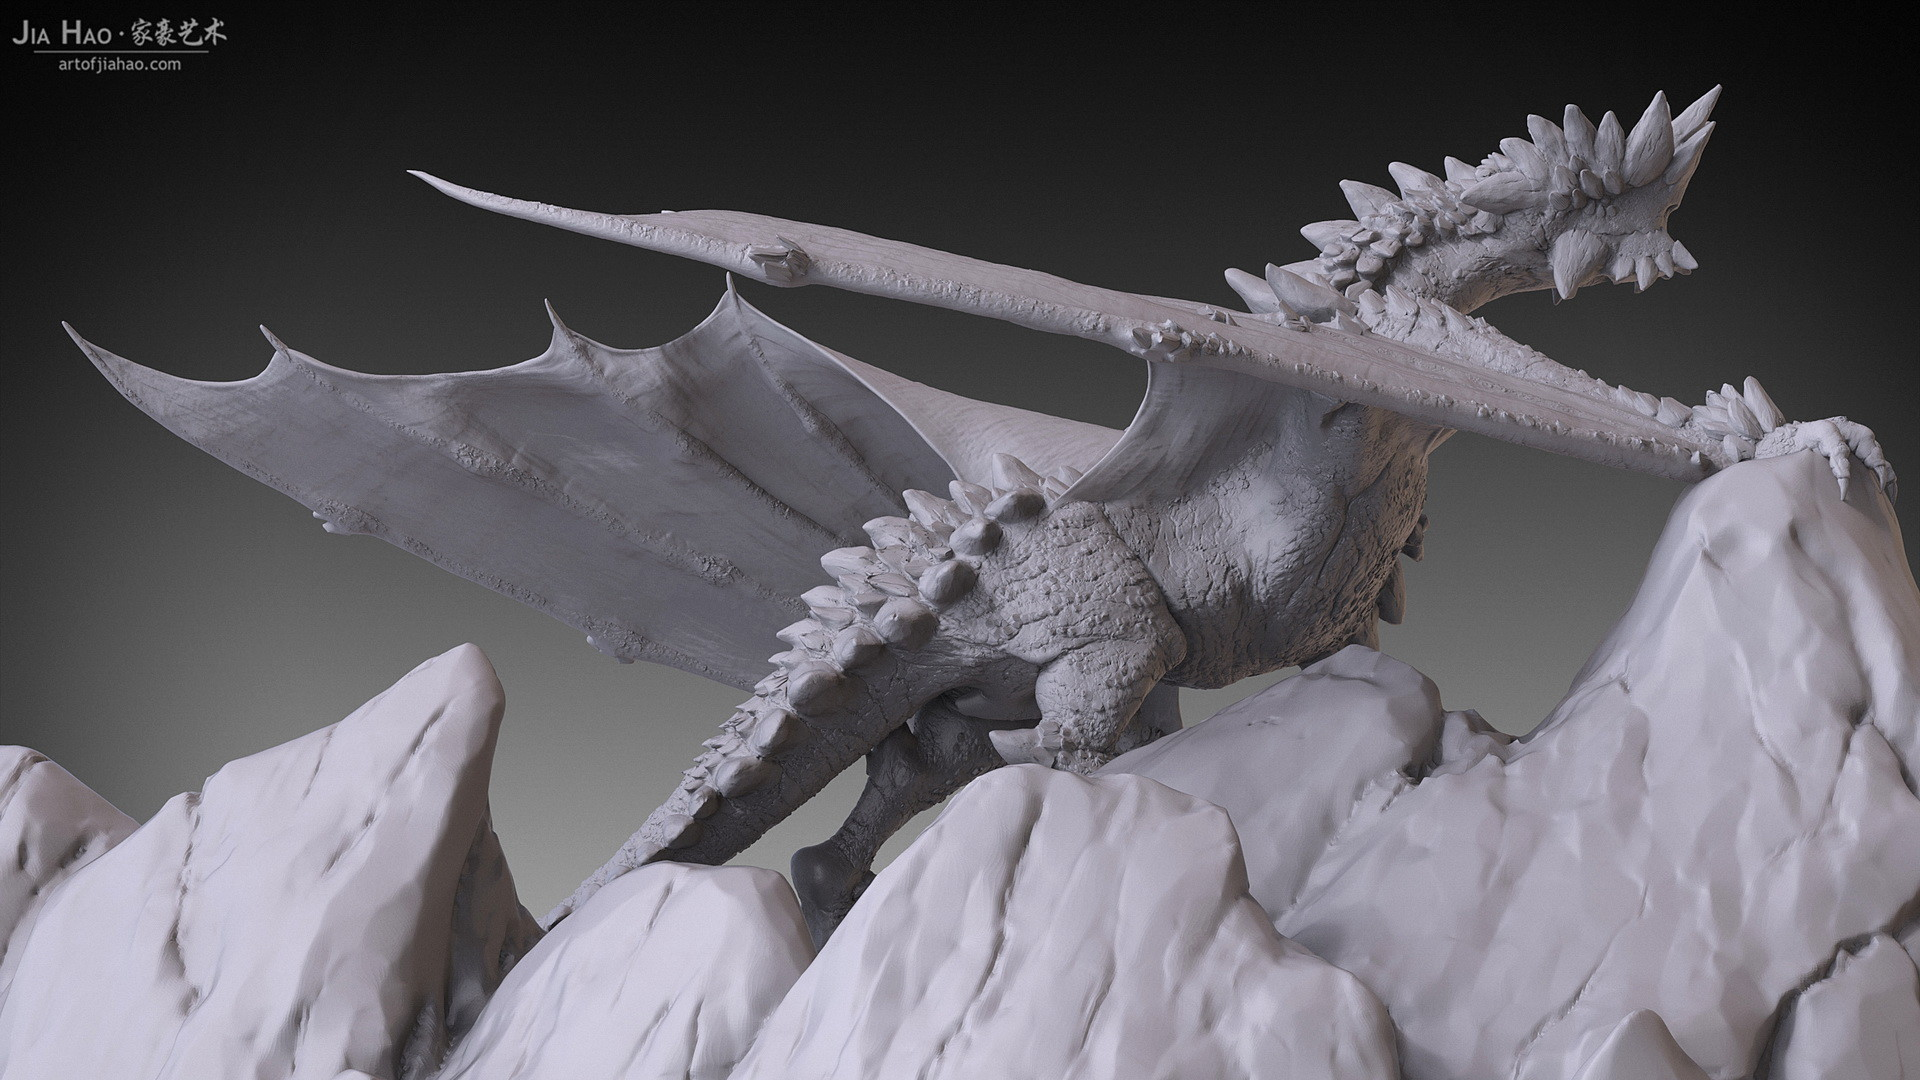 Jia hao 2017 rockdragon digitalsculpting 09